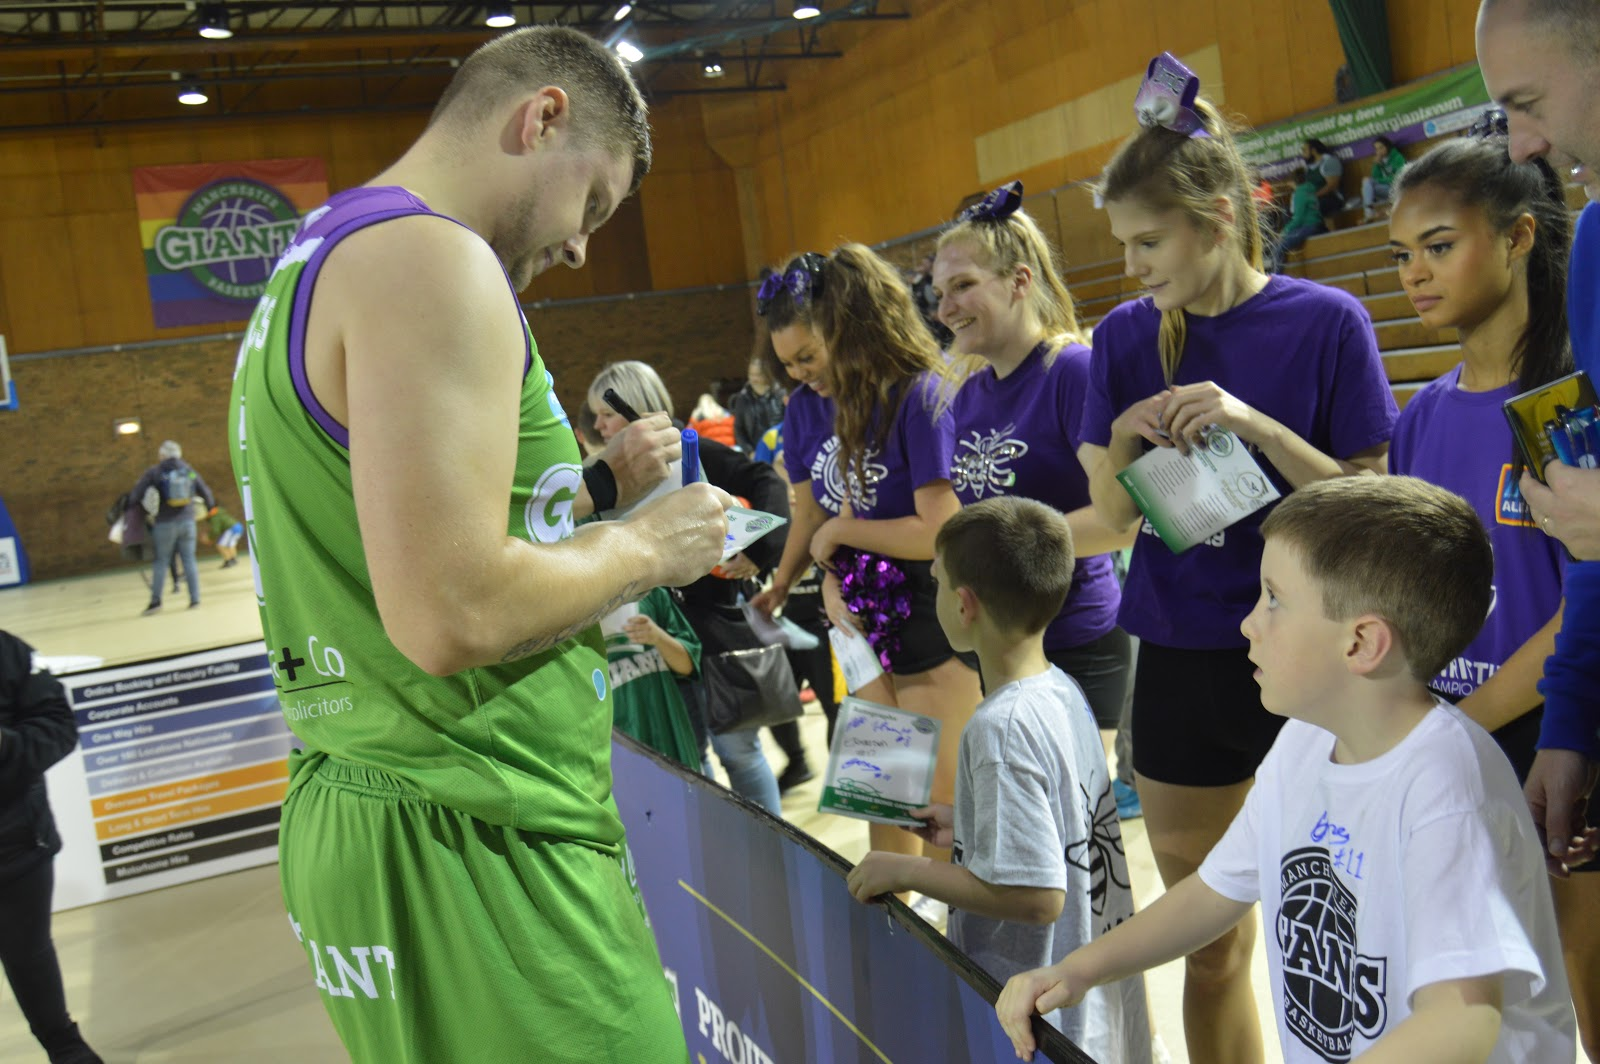 a basketball player signing an autograph